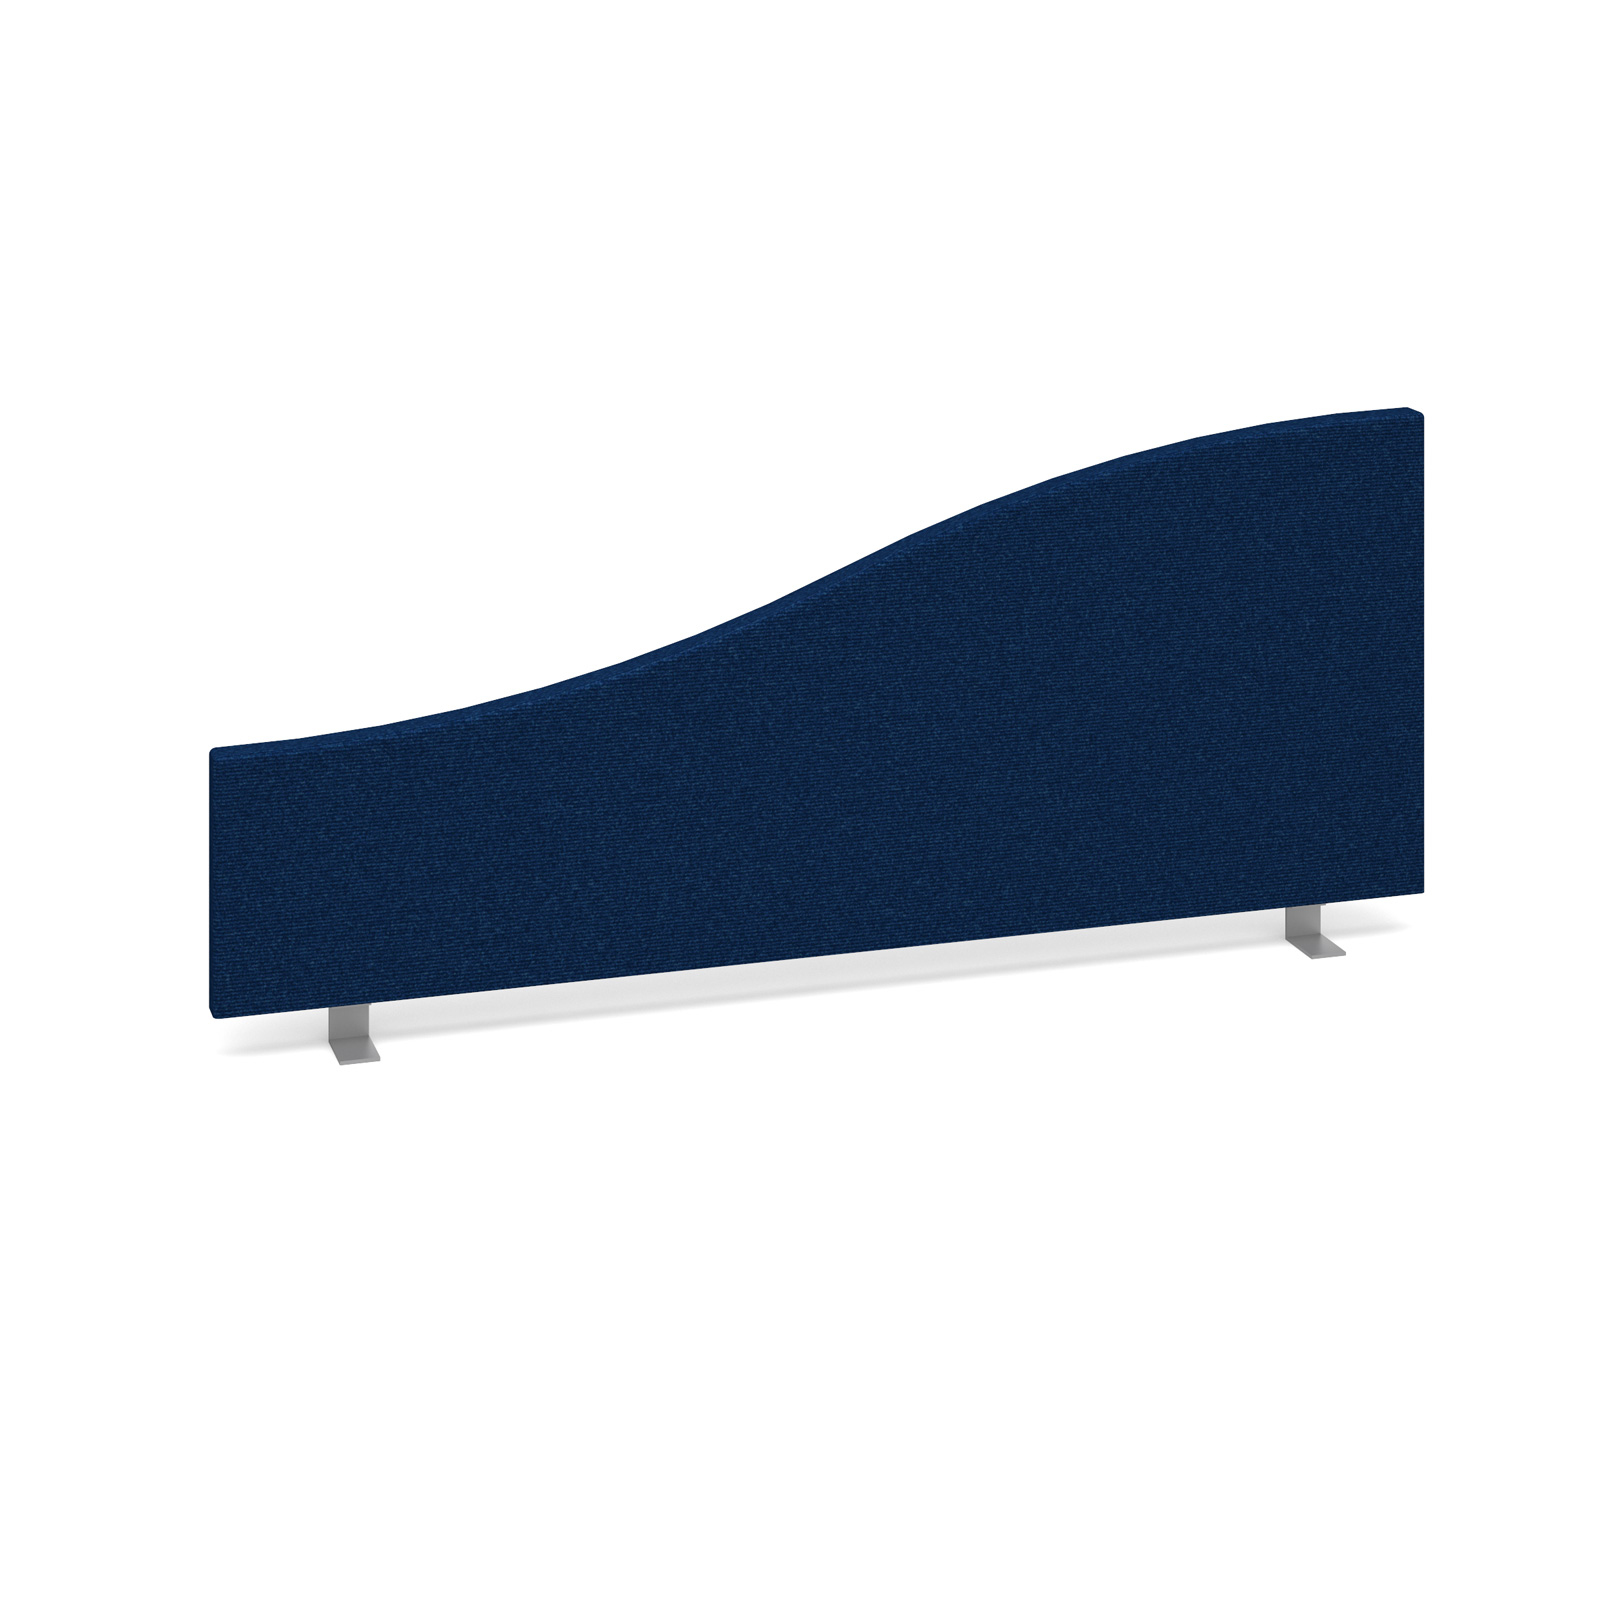 Curved Tops Wave desktop fabric screen